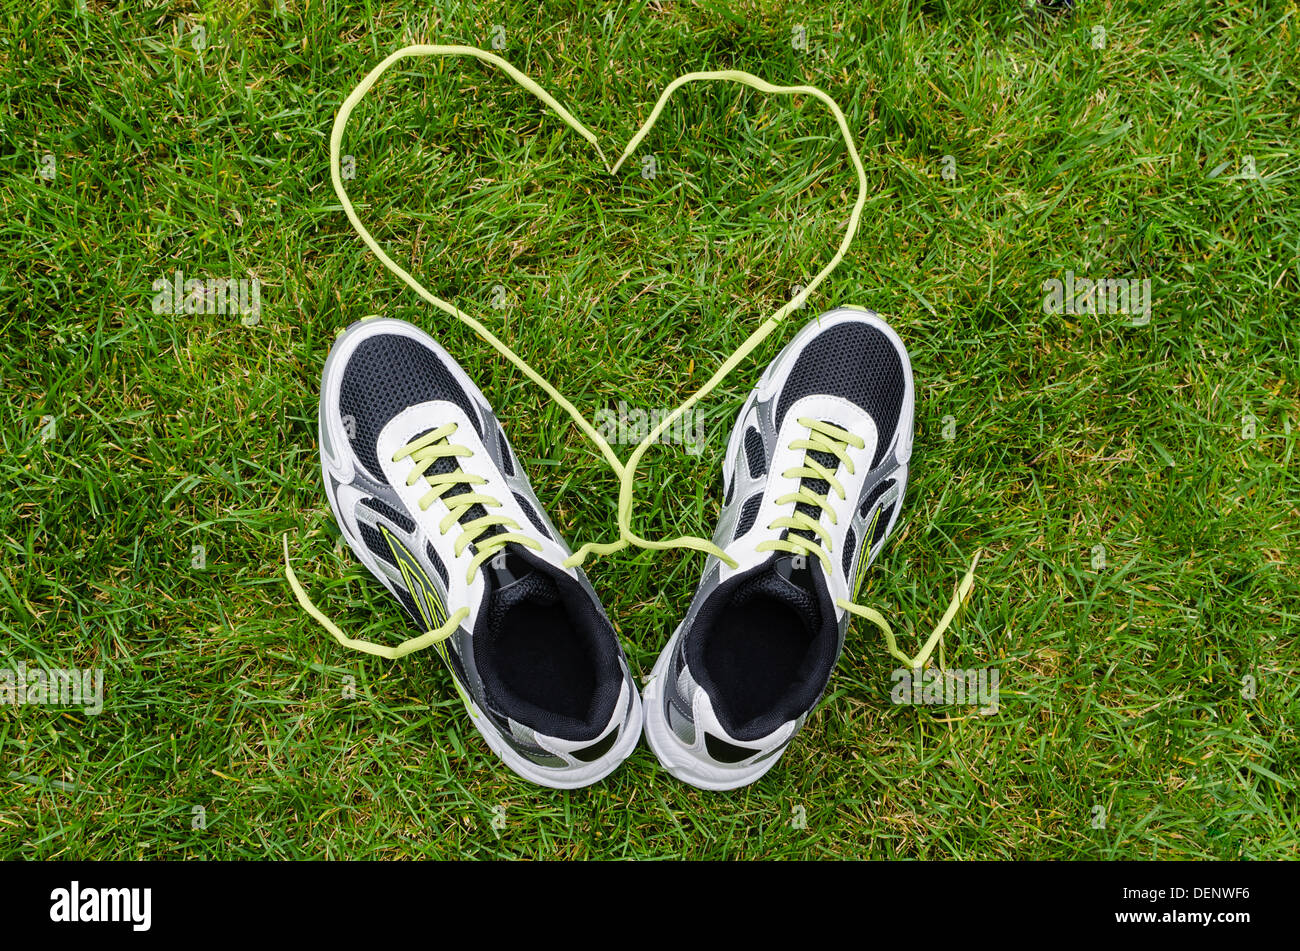 brand new 5c995 ee0bf White sneakers for running on grass with heart - Stock Image